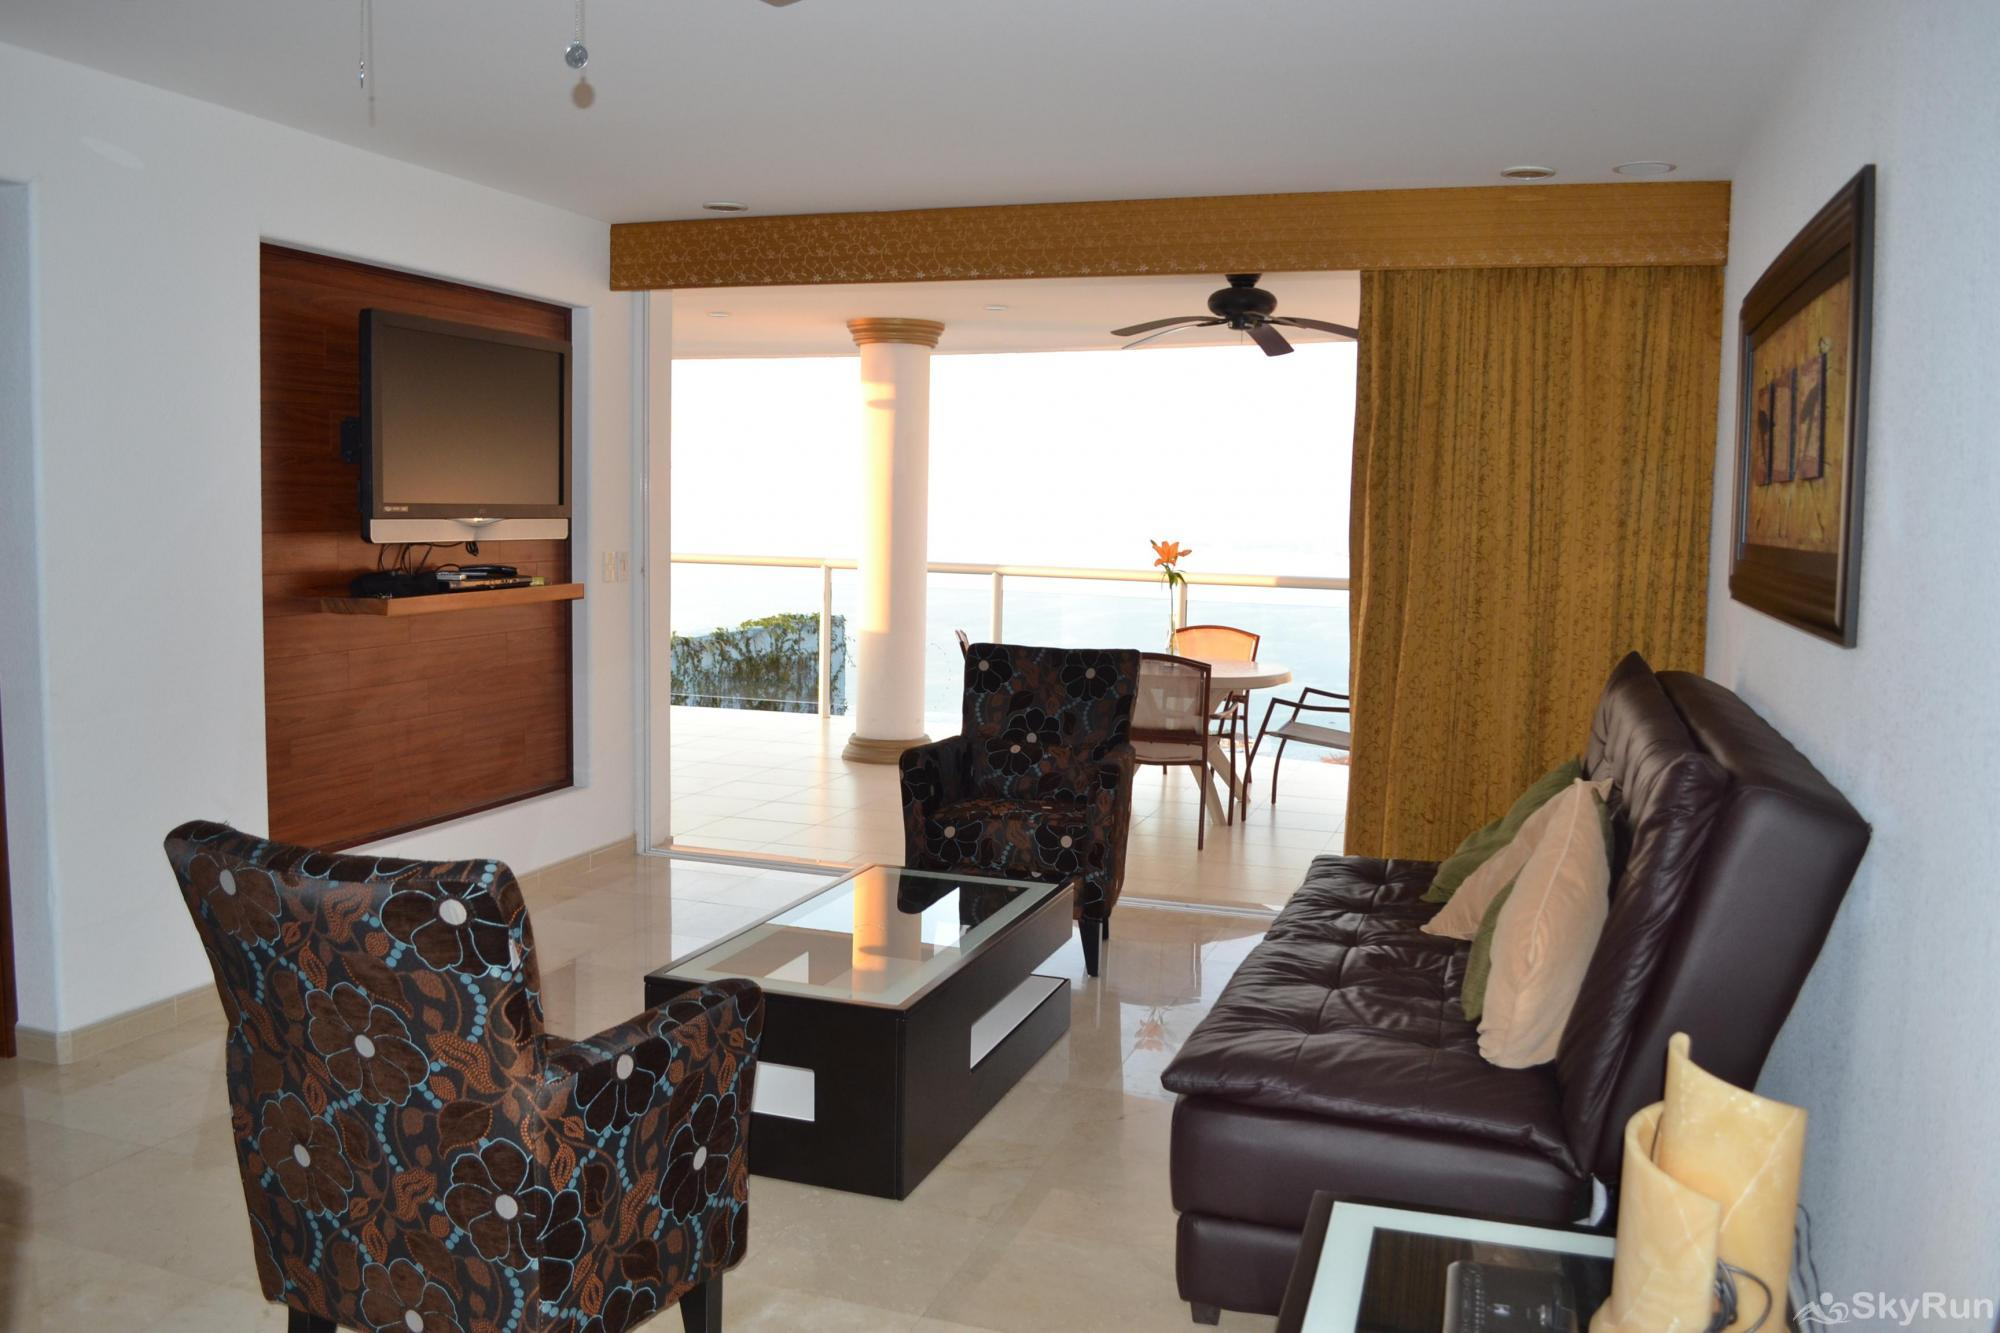 Spectacular Ocean View 1br with Outdoor Pool, balcony!  PV at it's finest DSC_1044.JPG